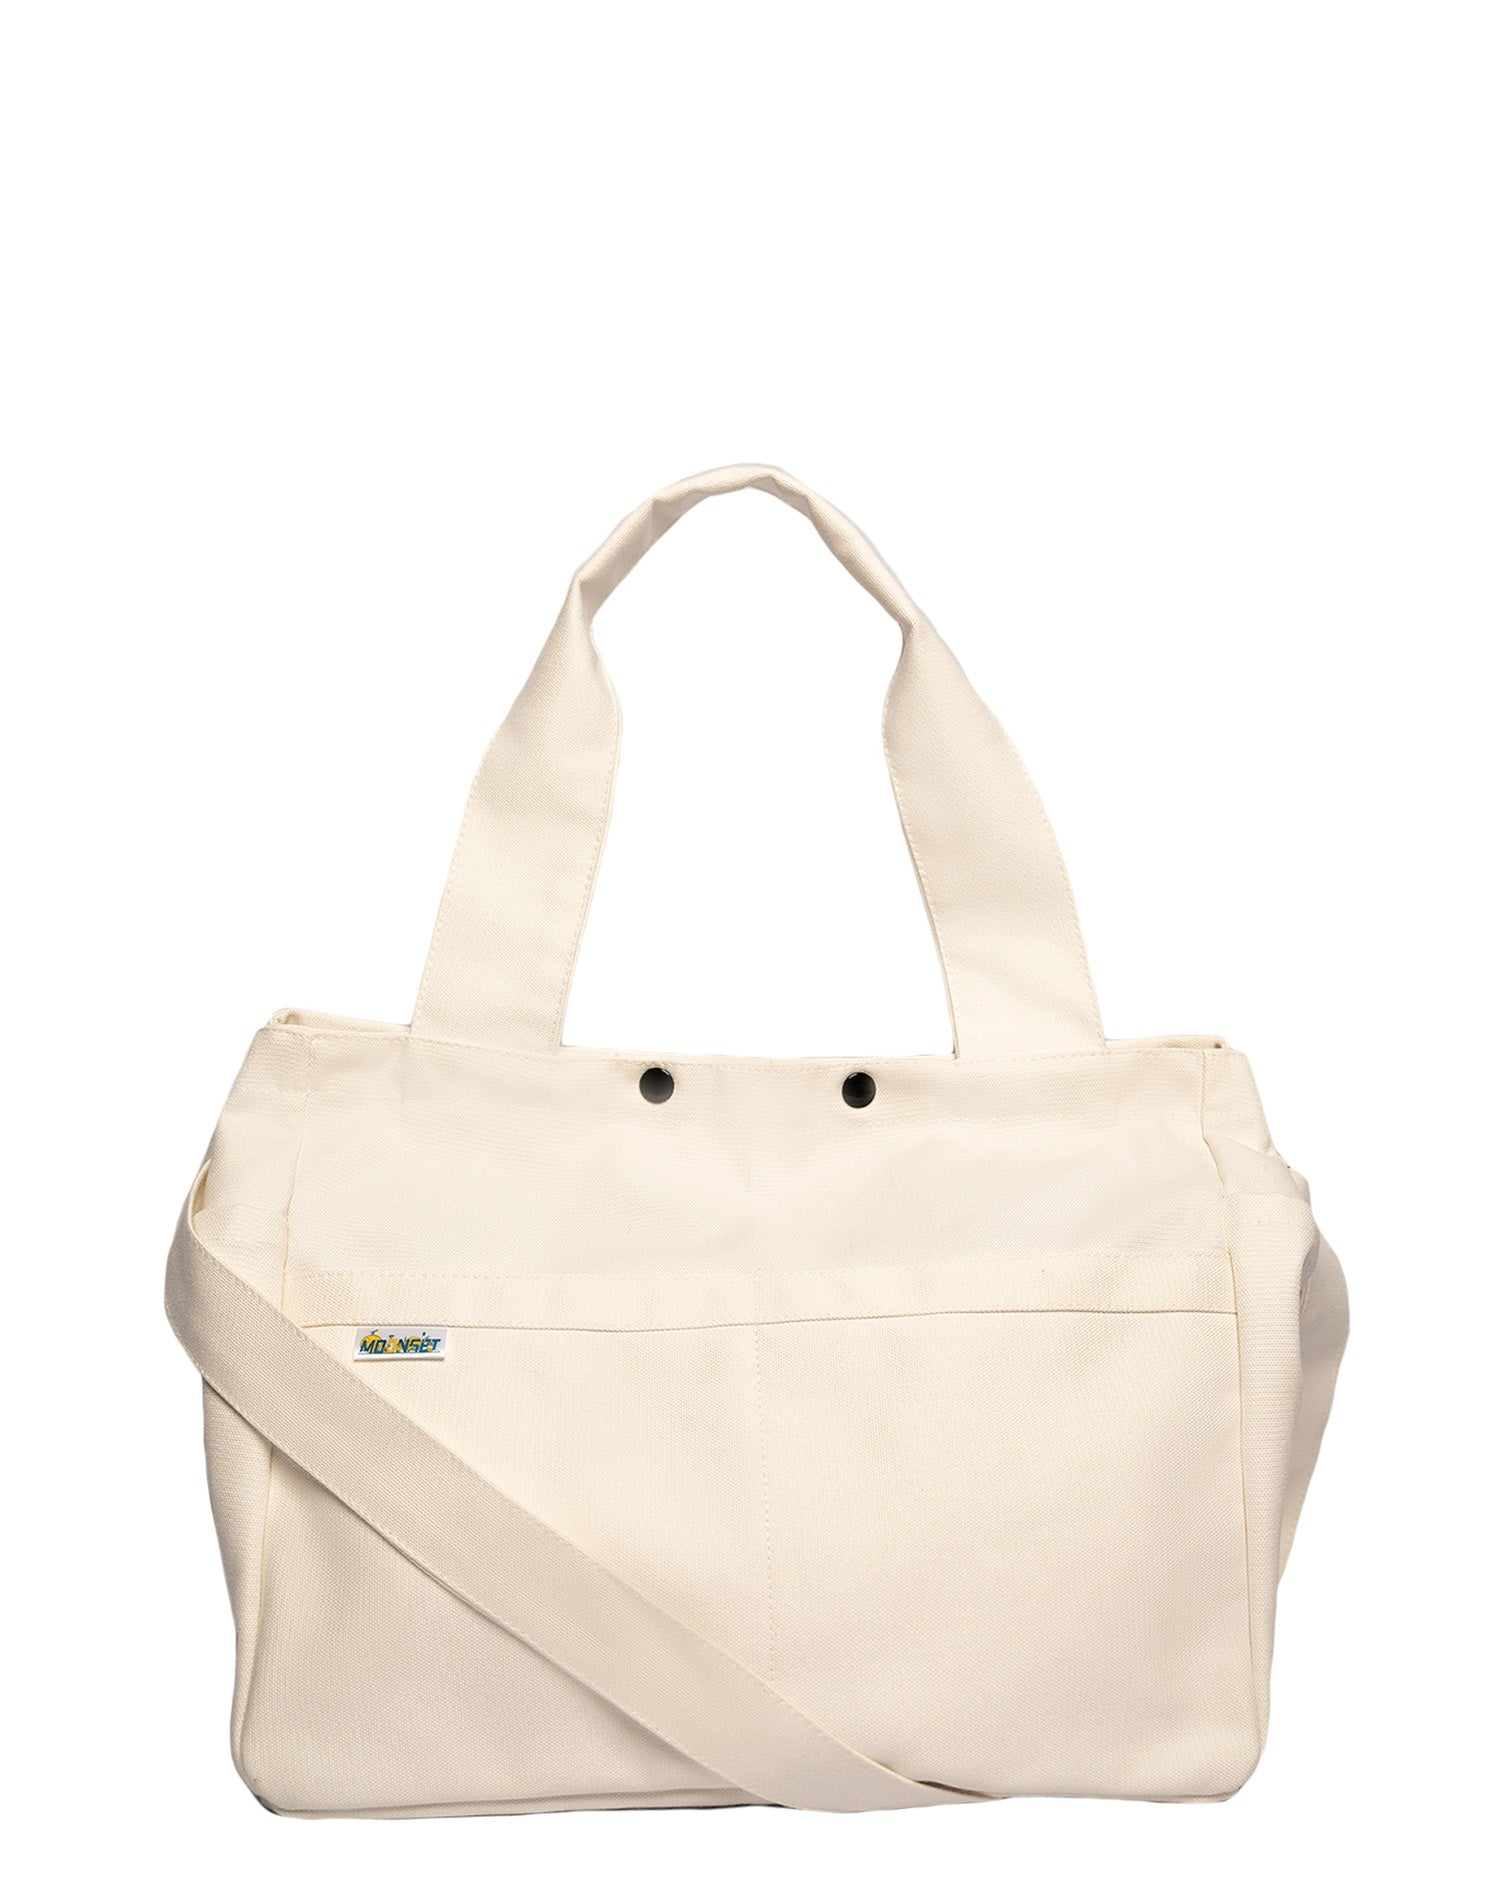 White Square Canvas Tote Bag.白色方形帆布側孭袋